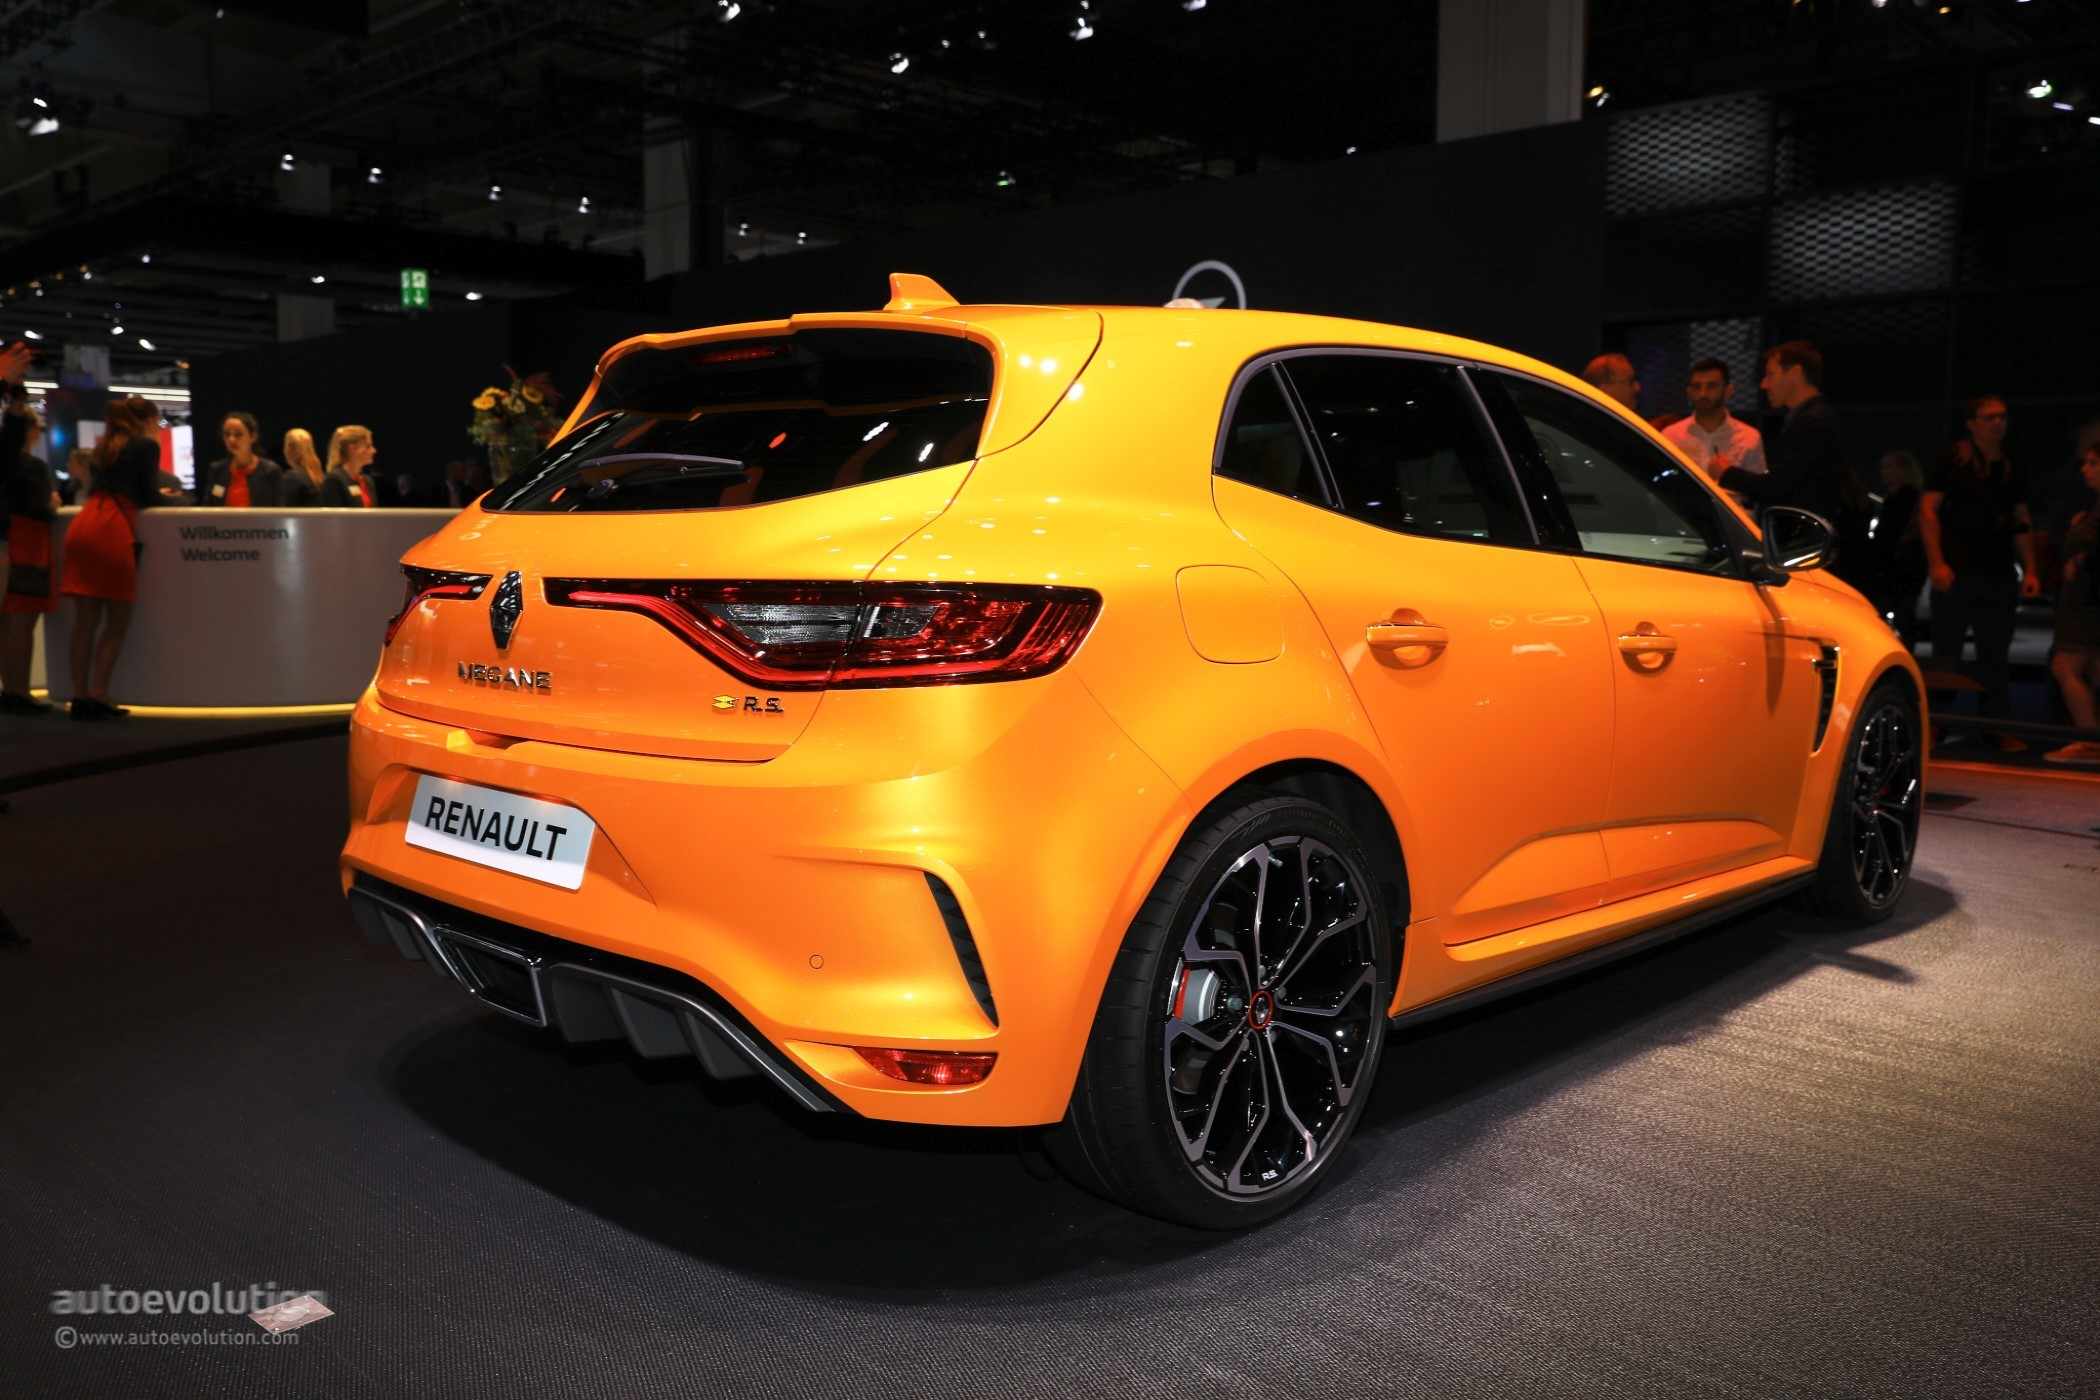 2018 renault megane rs is the best hot hatchback at iaa 2017 autoevolution. Black Bedroom Furniture Sets. Home Design Ideas